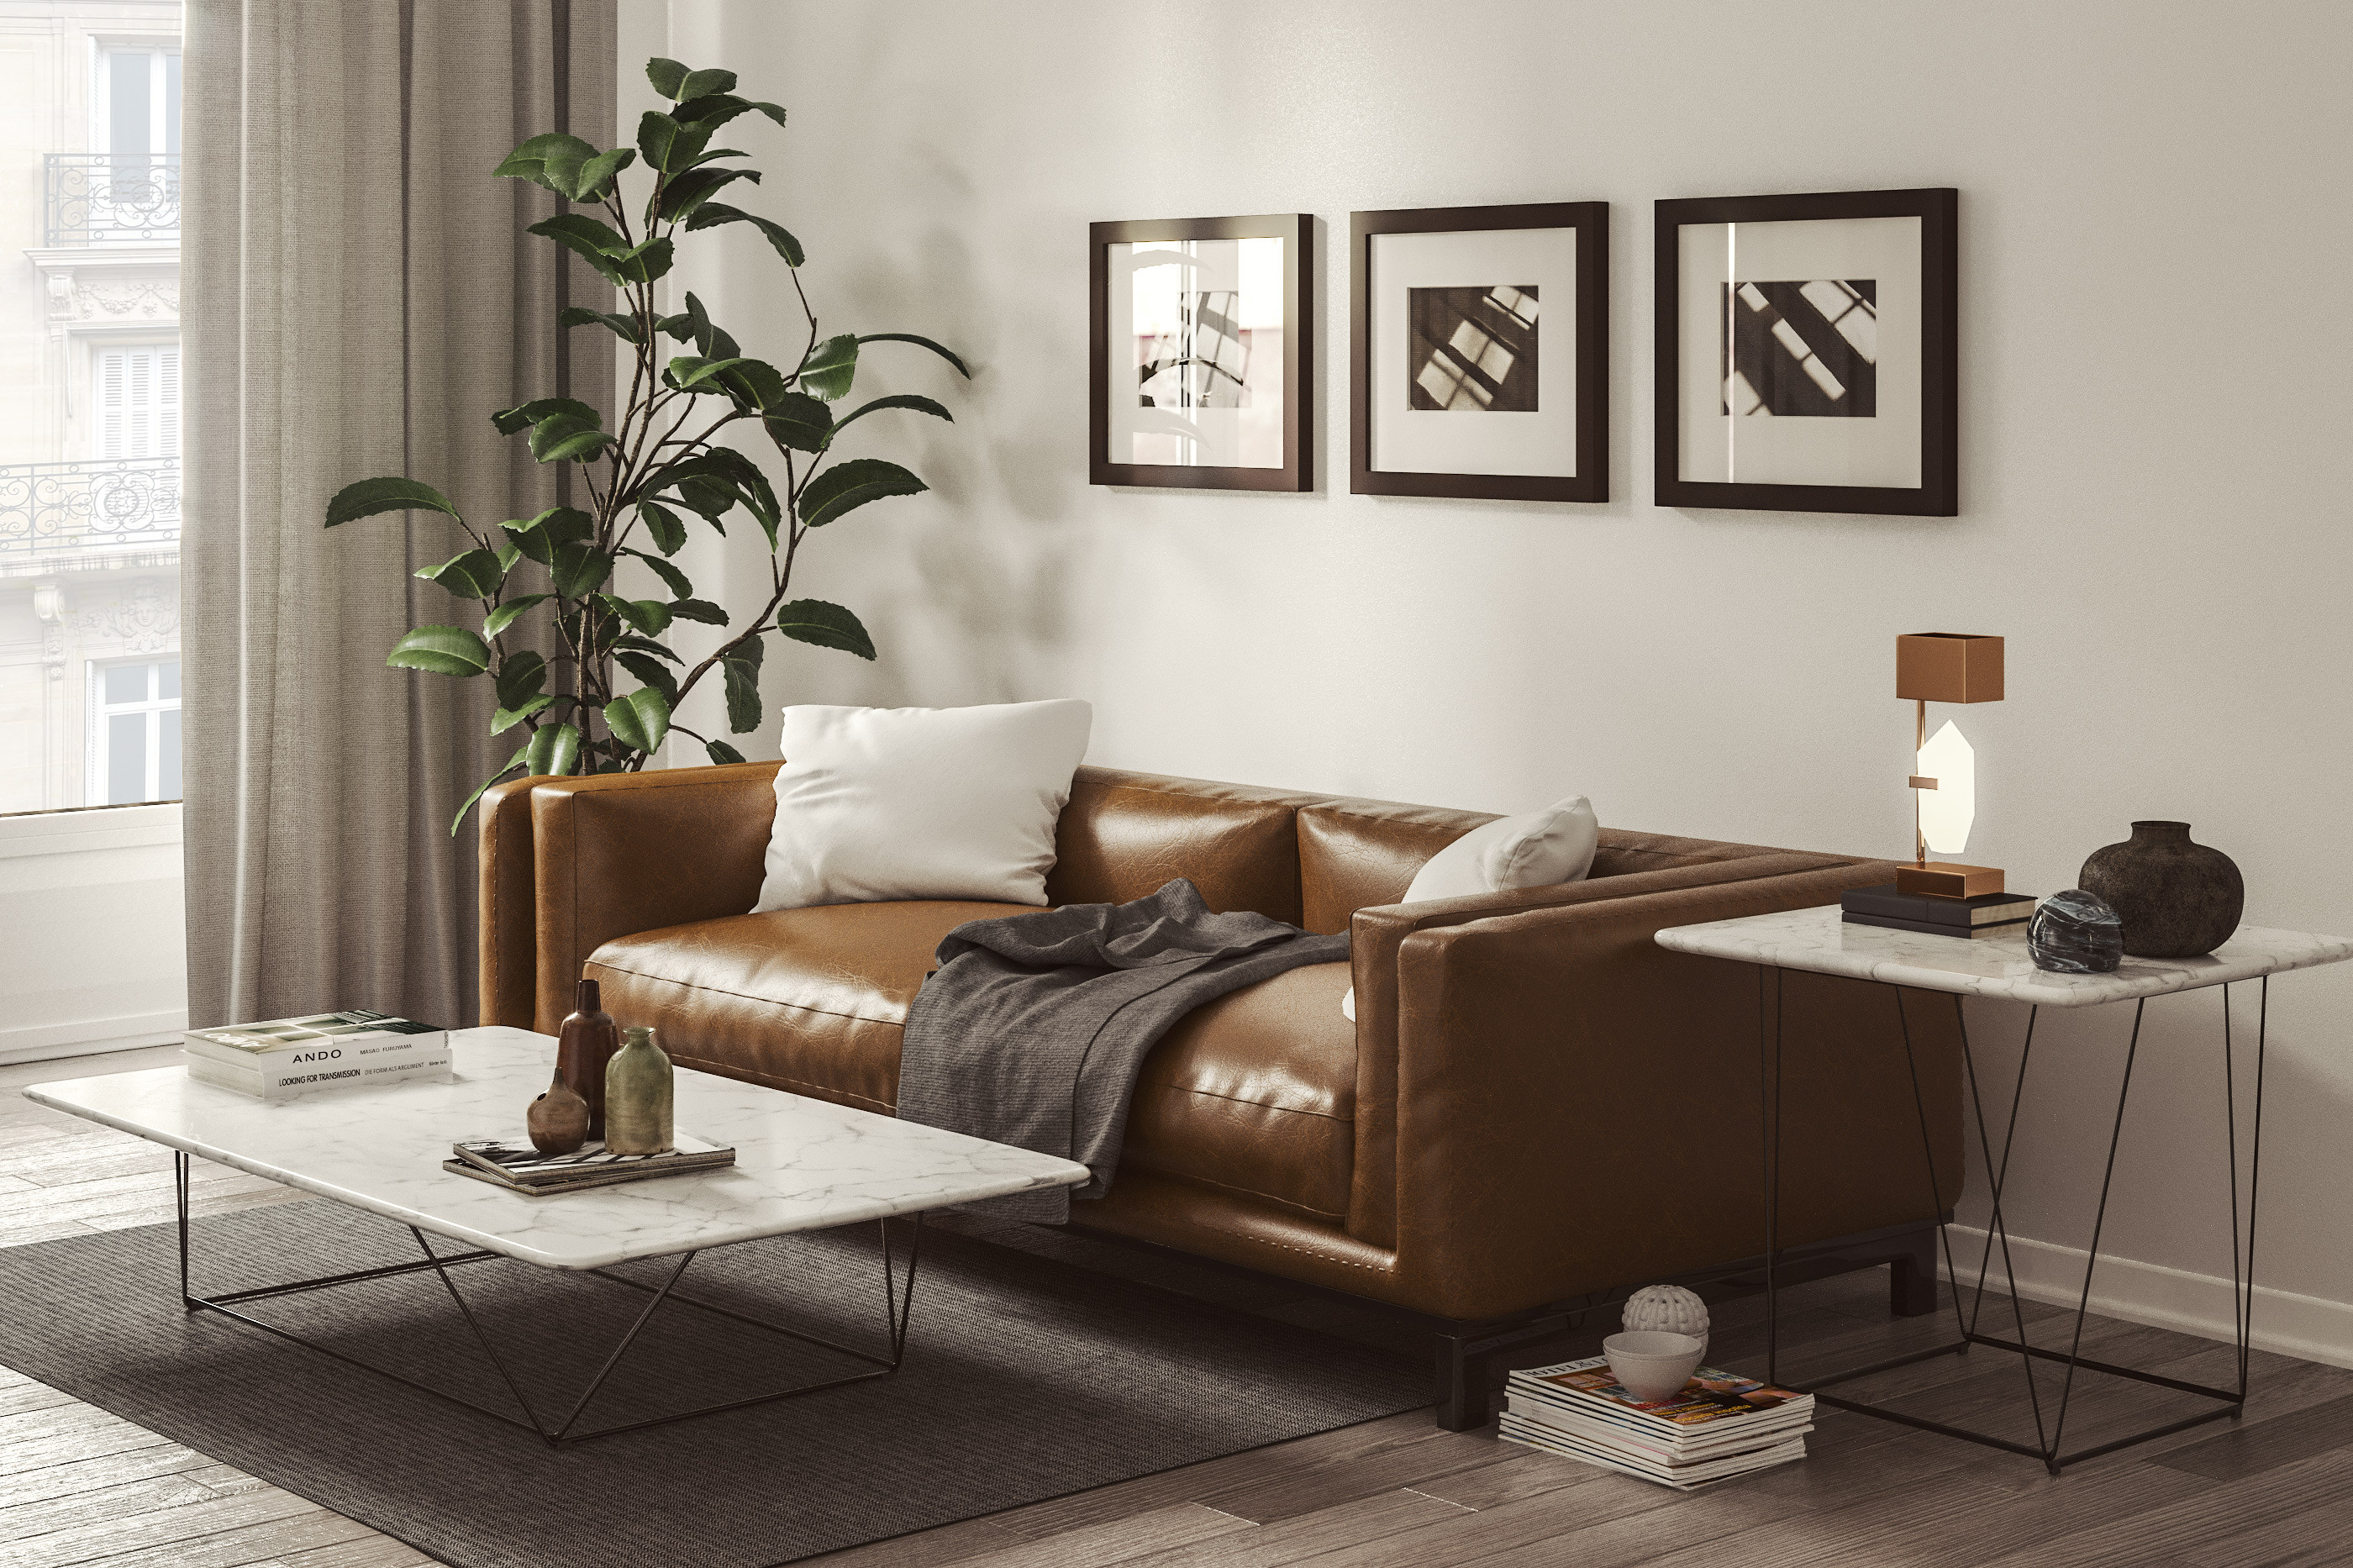 Sofa Modeled With Smax Render